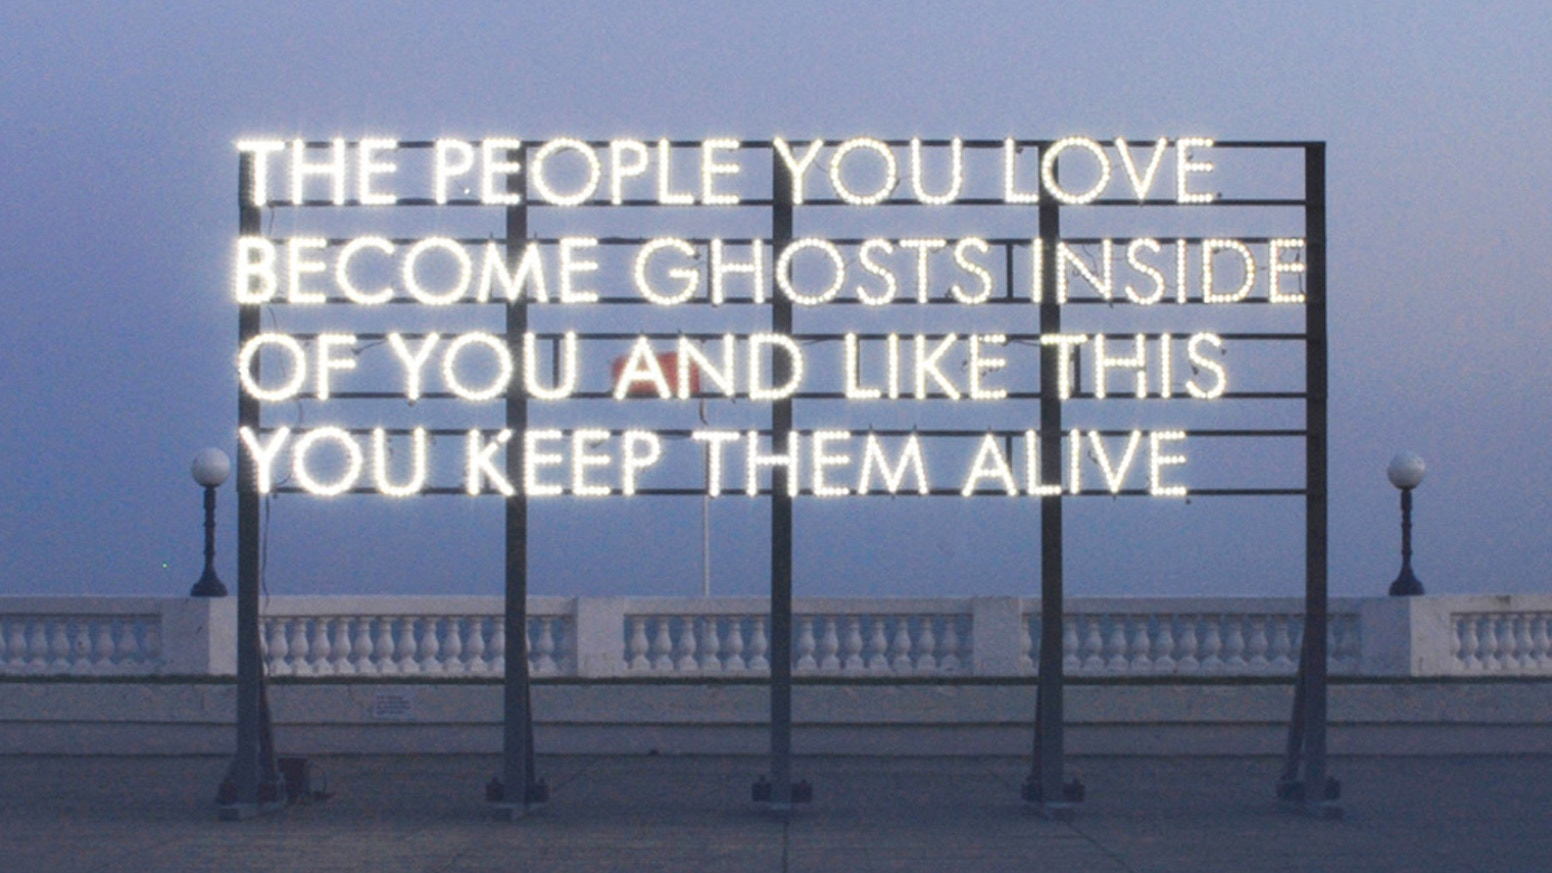 Robert Montgomery: Echoes of Voices in the High Towers by